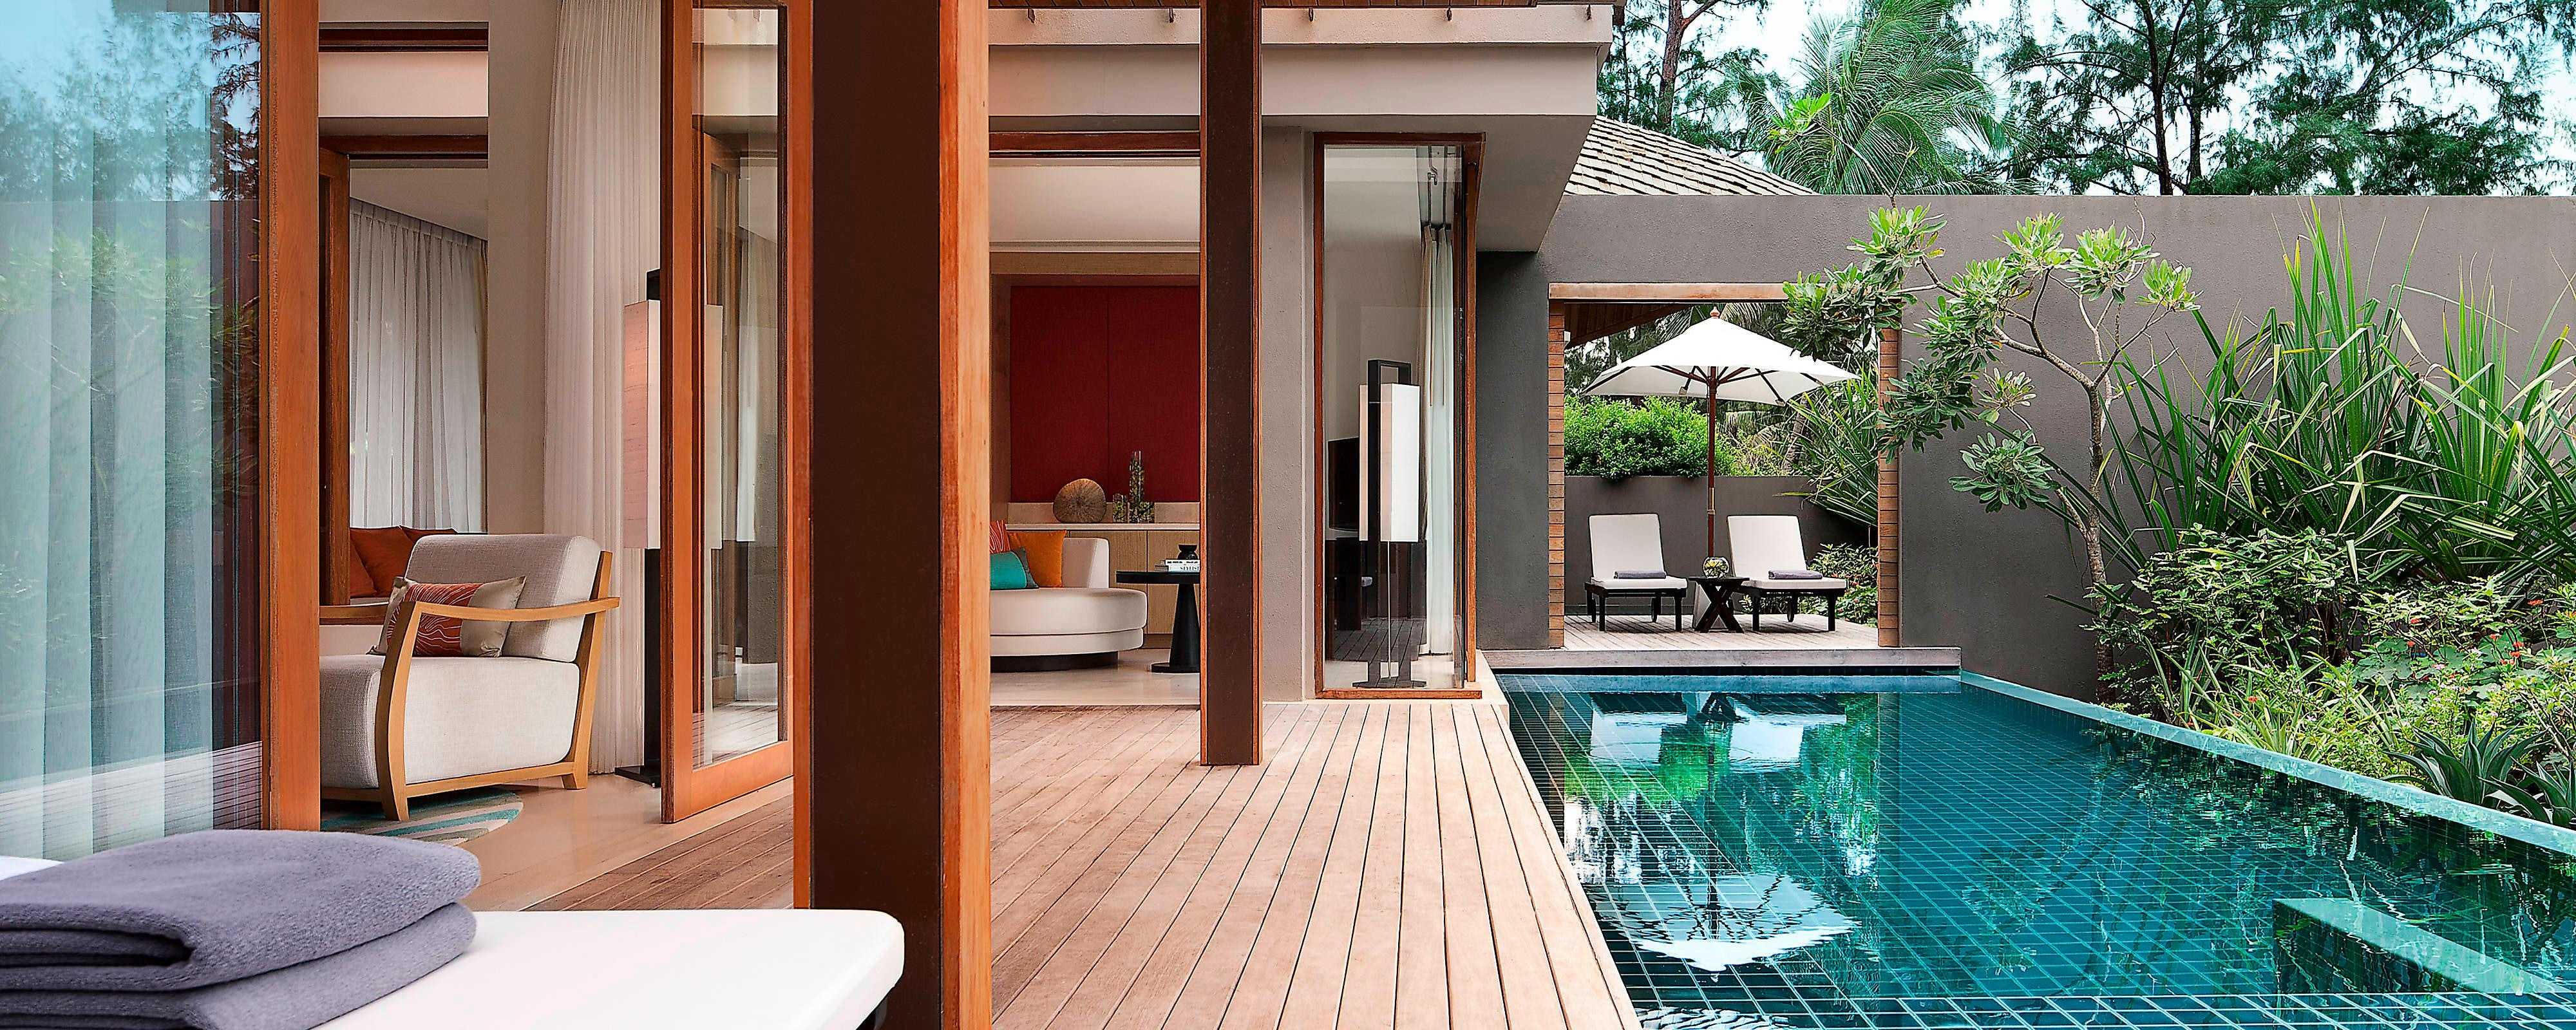 Phuket Luxury villa with pool